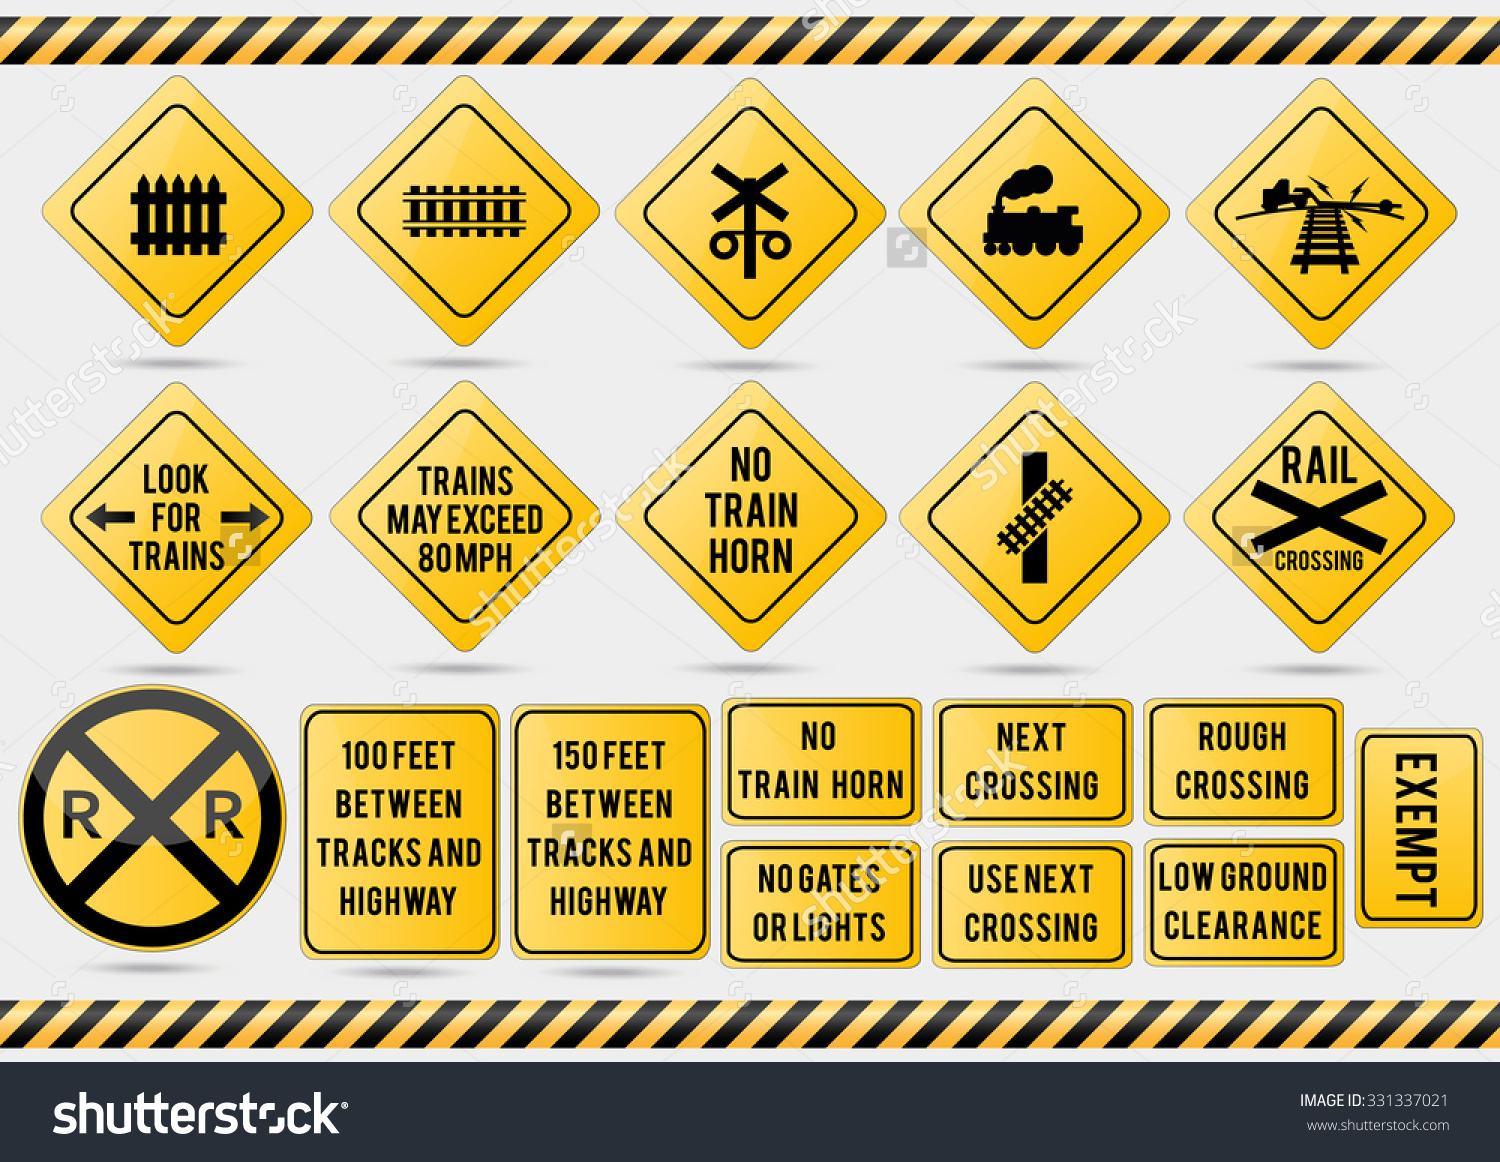 American Traffic Signs Railroad Stock Vector 331337021.